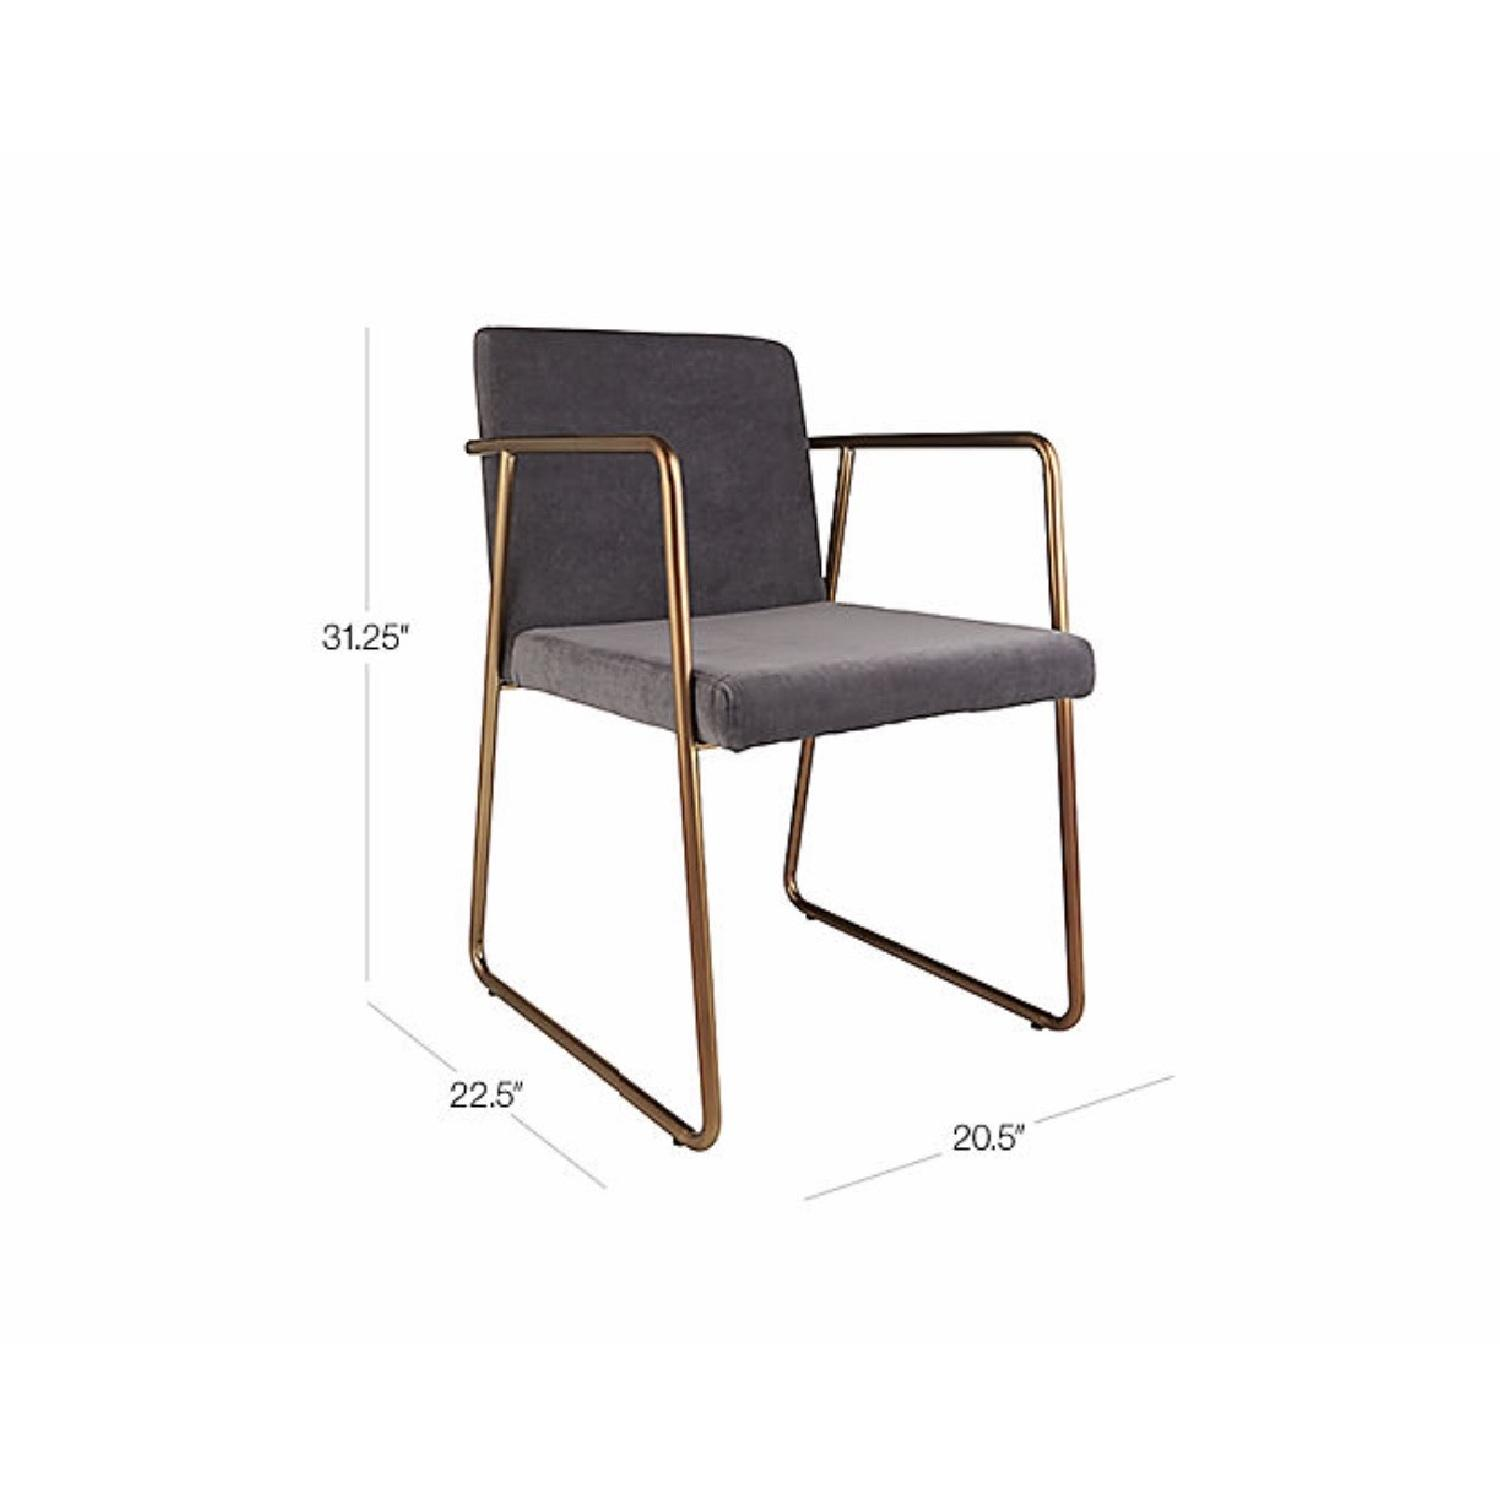 CB2 Rouka Grey Dining Chair